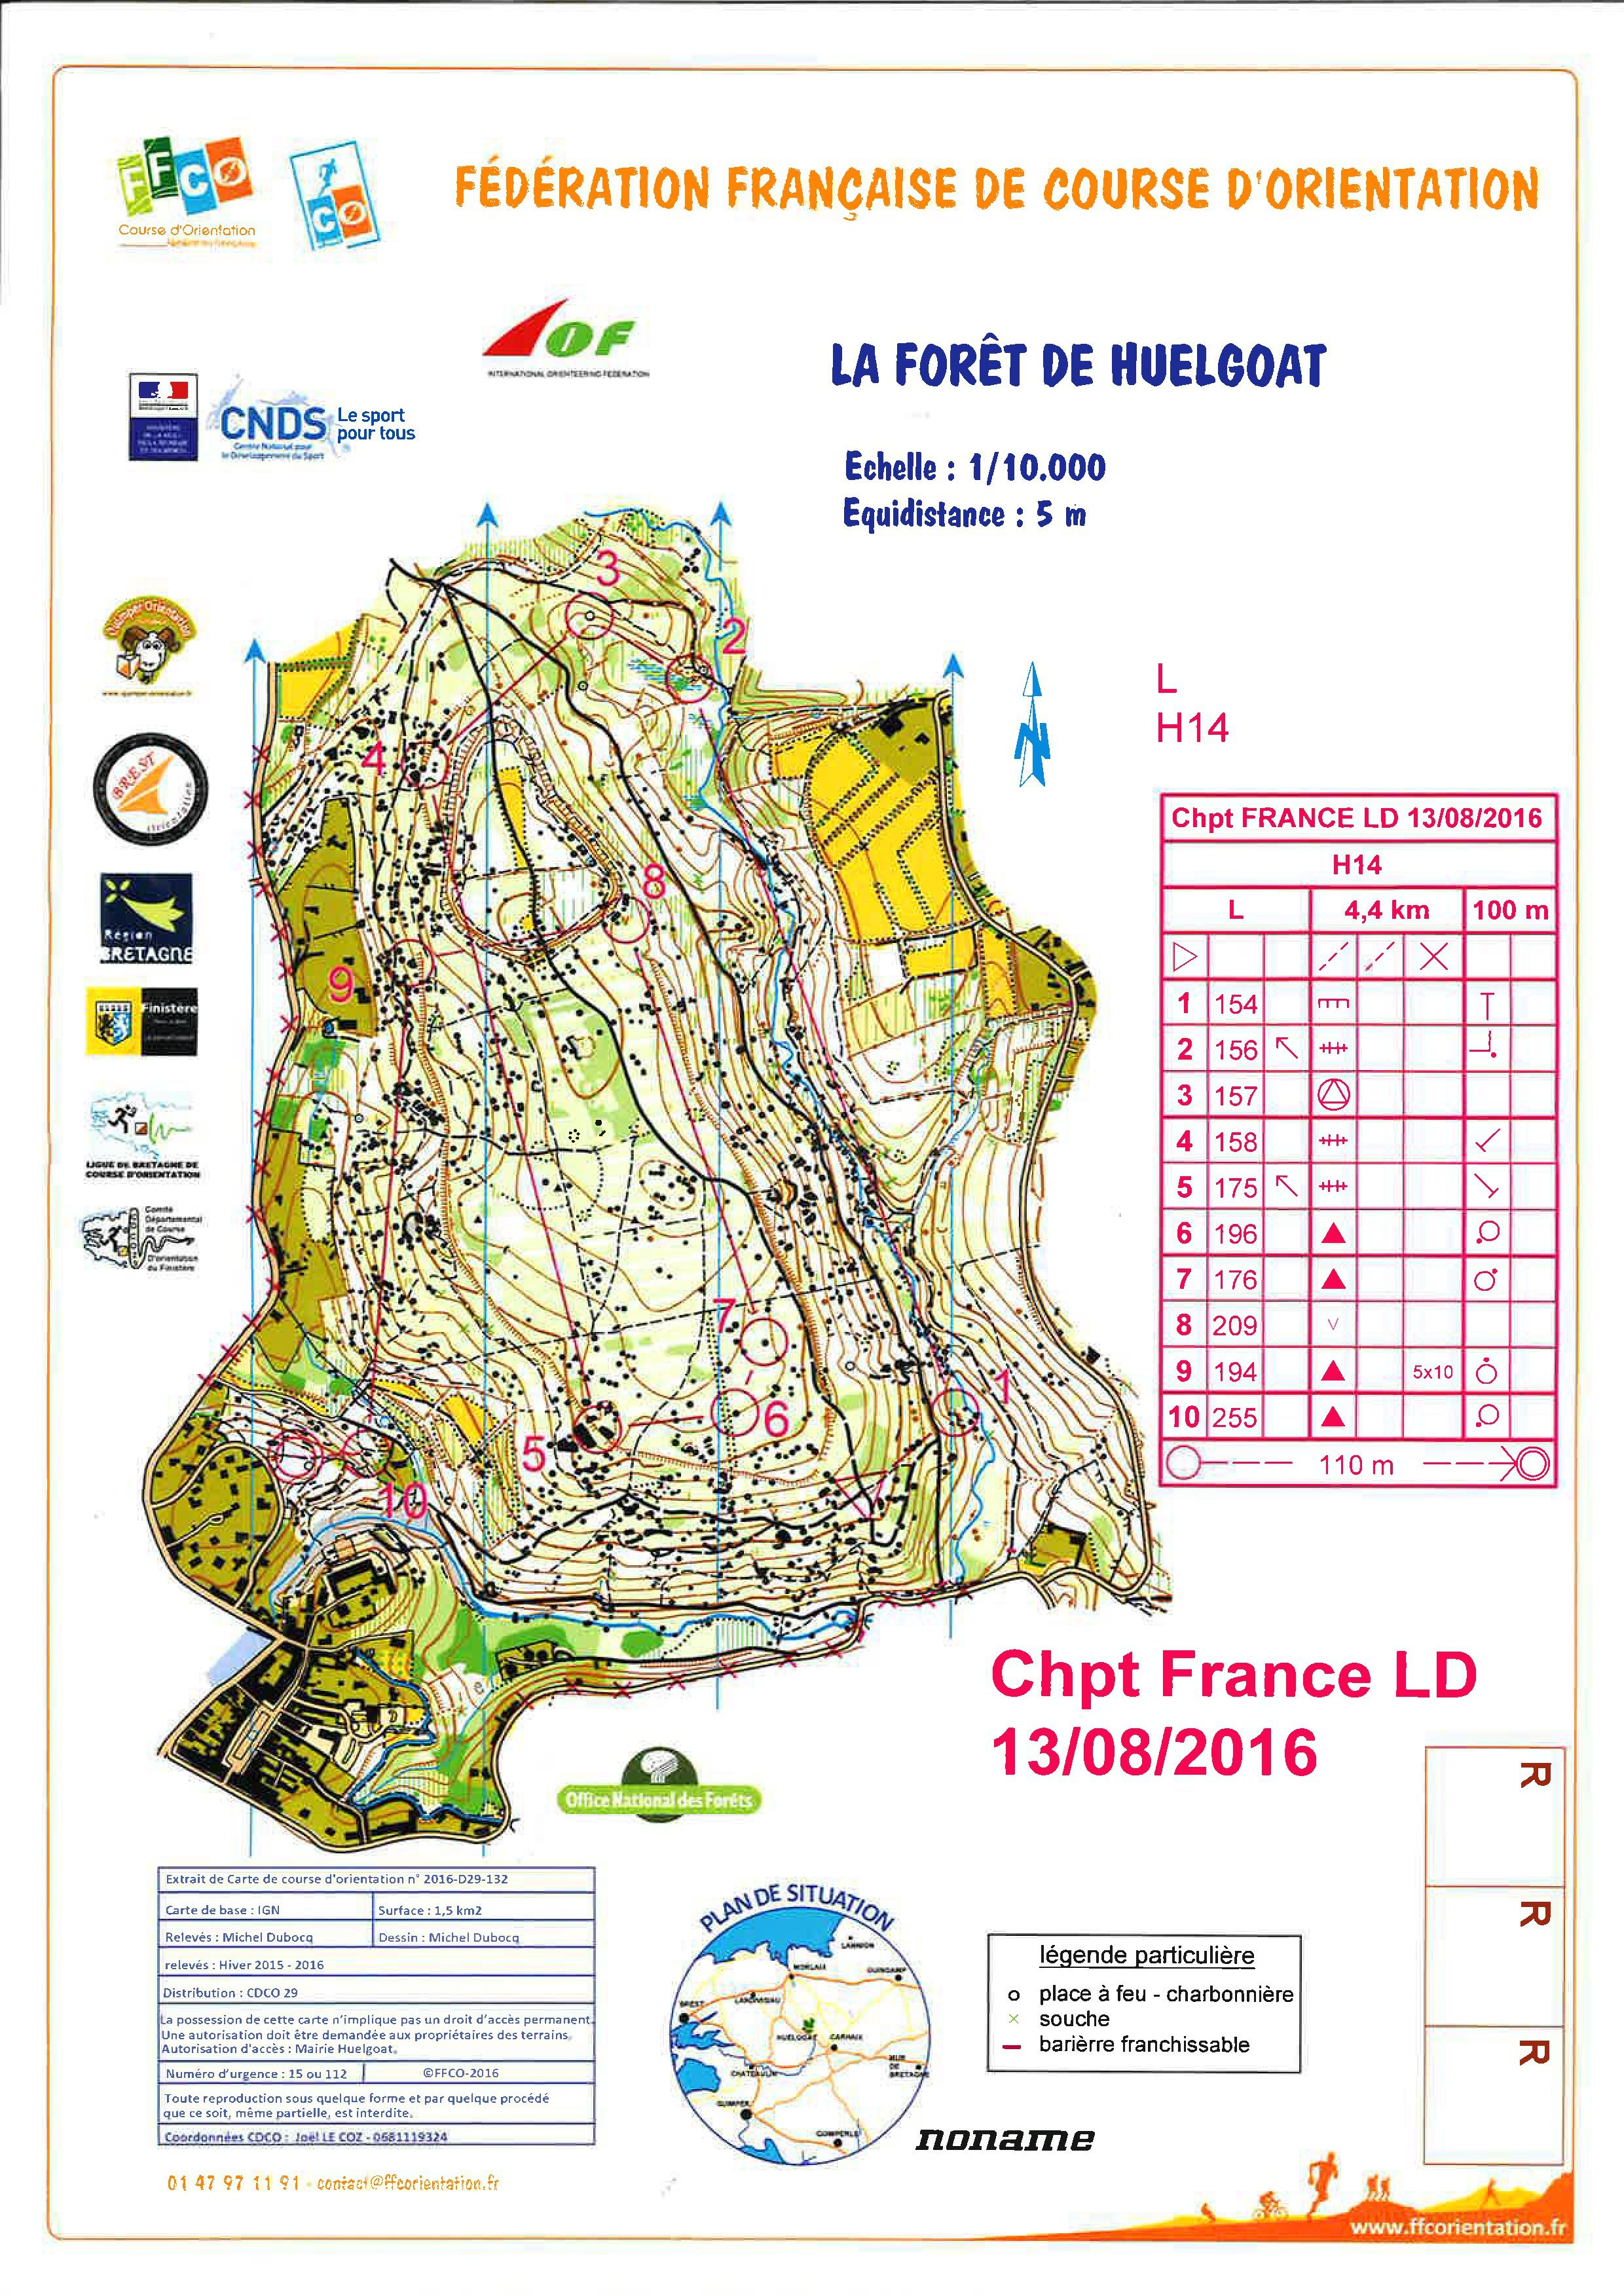 Championnat de France Longue Distance (13-08-2016)